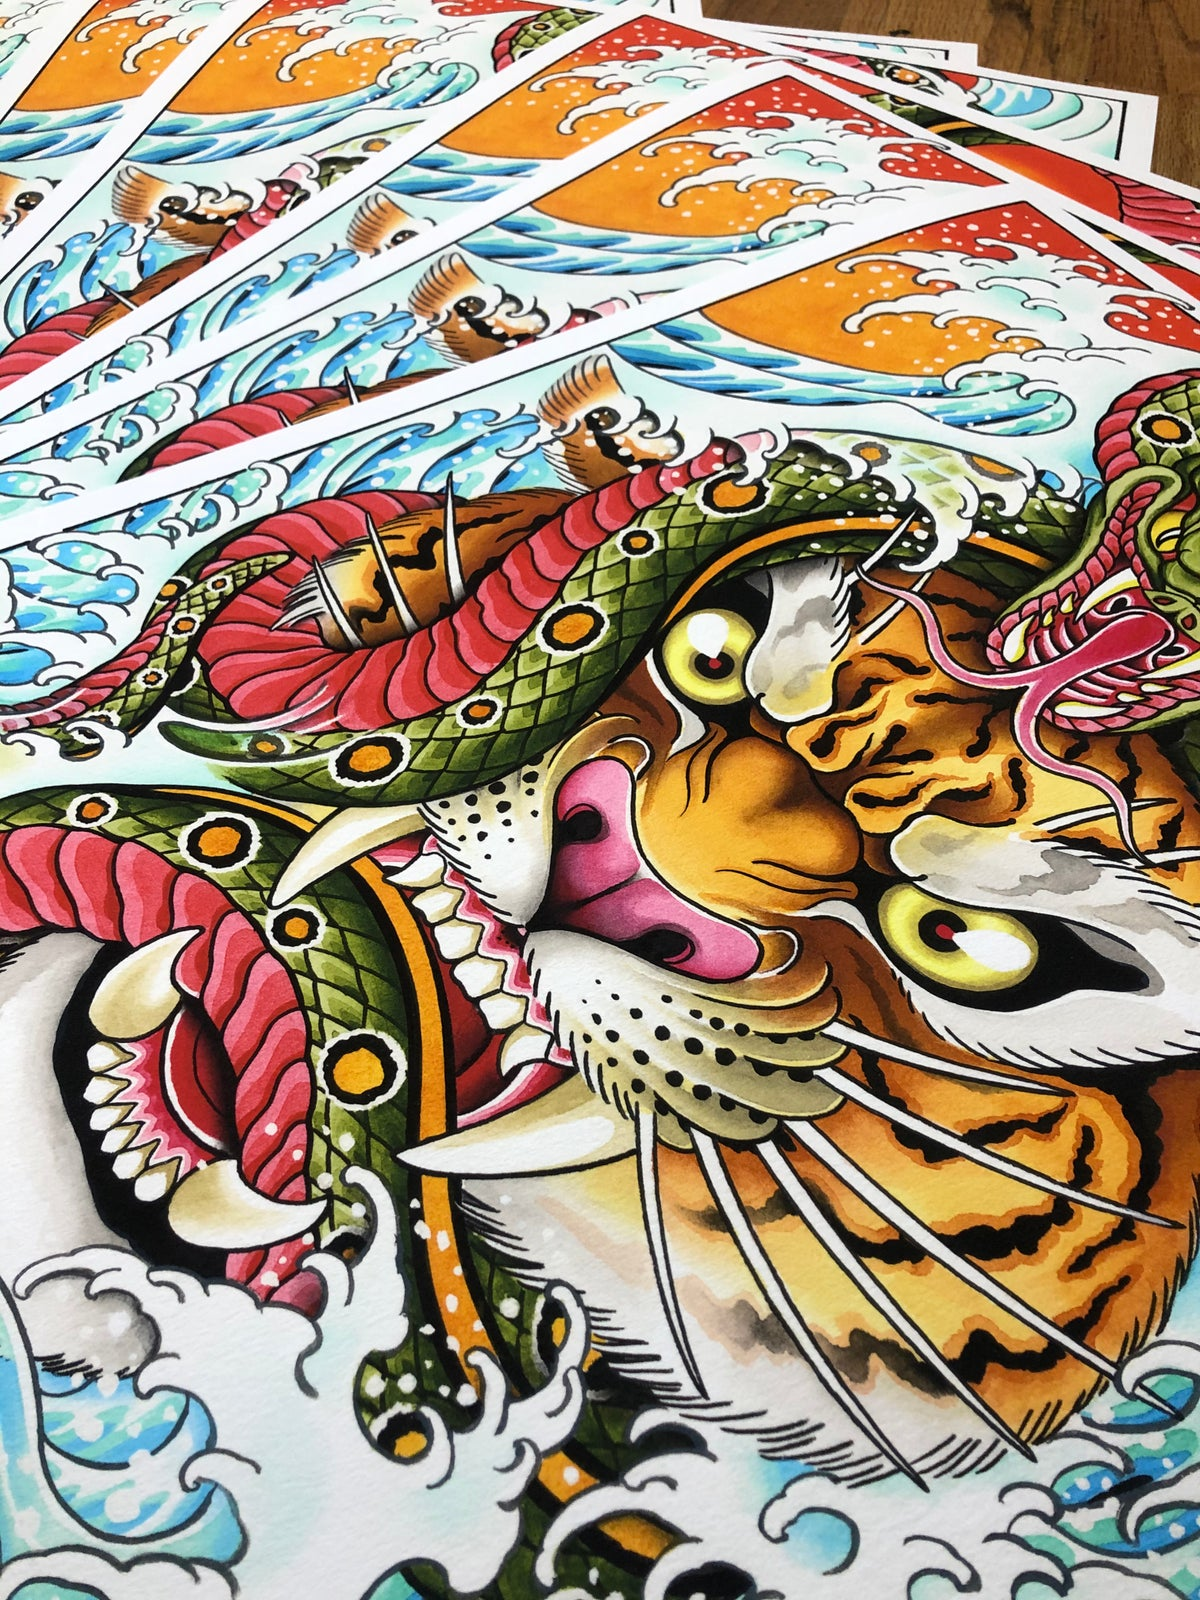 16x20 Tiger and Snake Giclee Print